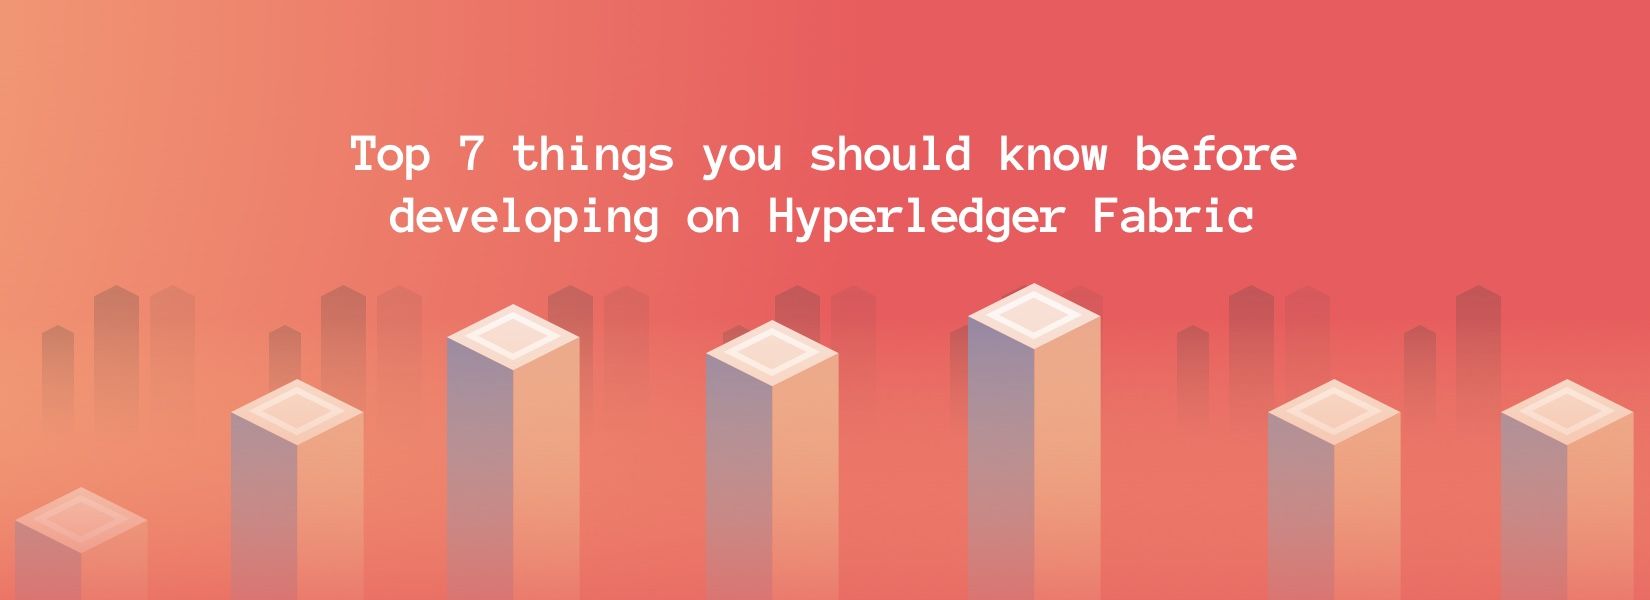 Top 7 things you should know before developing on Hyperledger Fabric